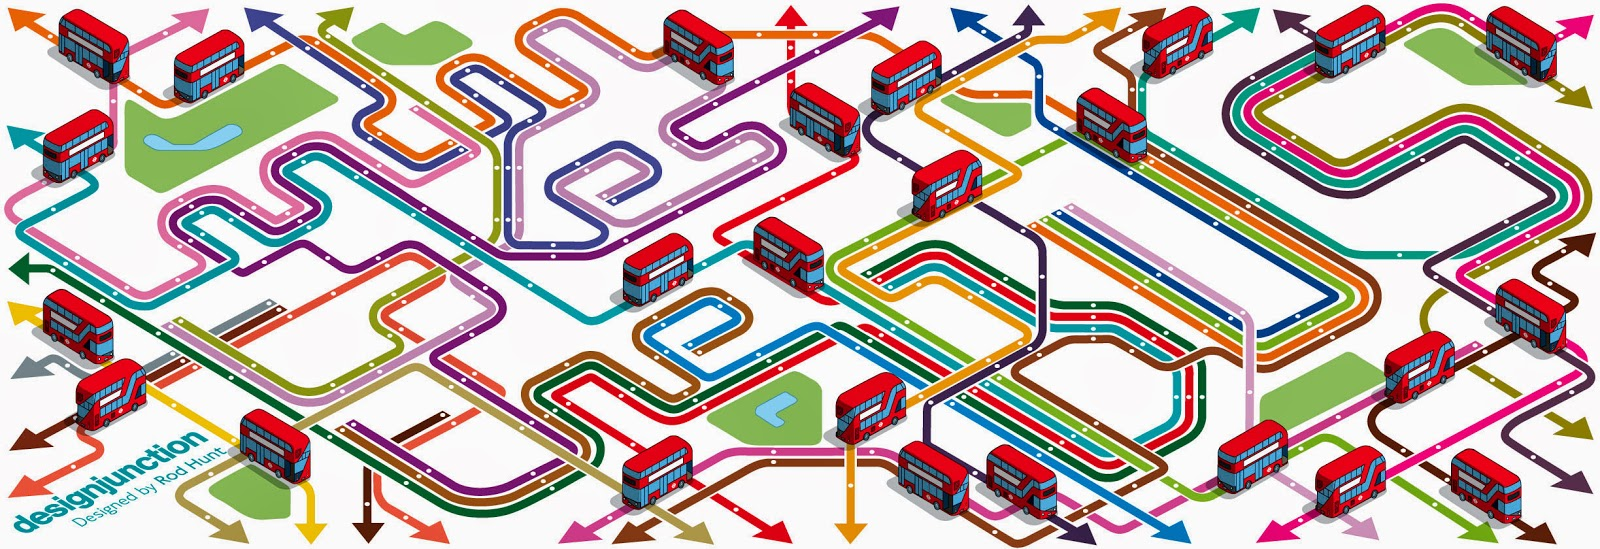 Tfl39s Year Of The Bus London Takes The Bus Limited